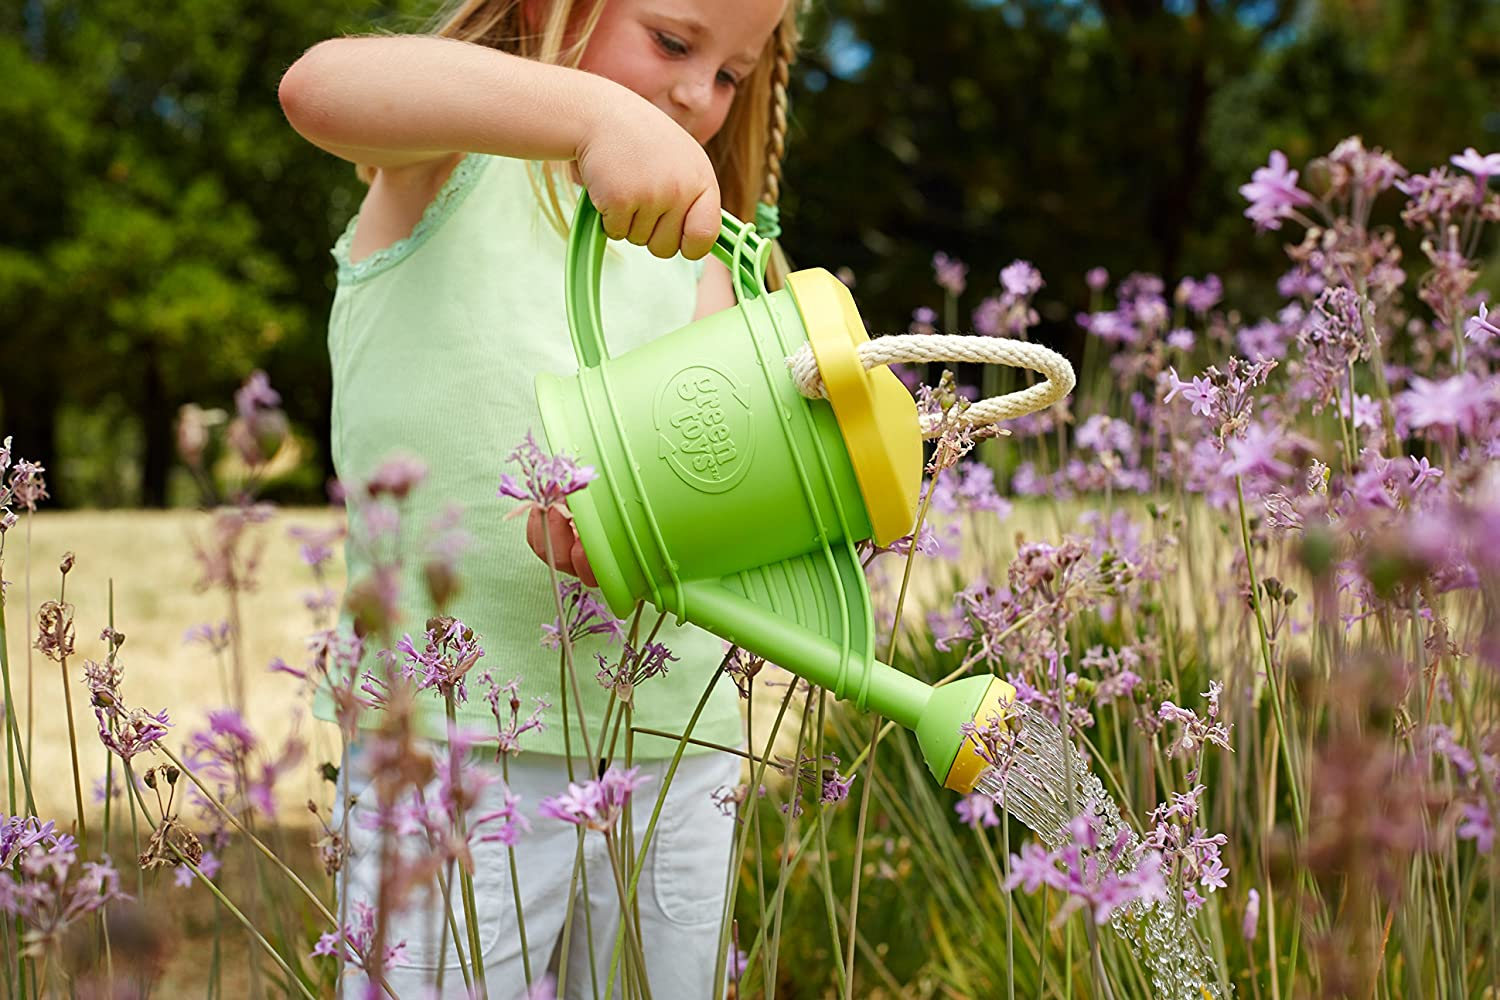 amazon com green toys watering can toy green toys u0026 games